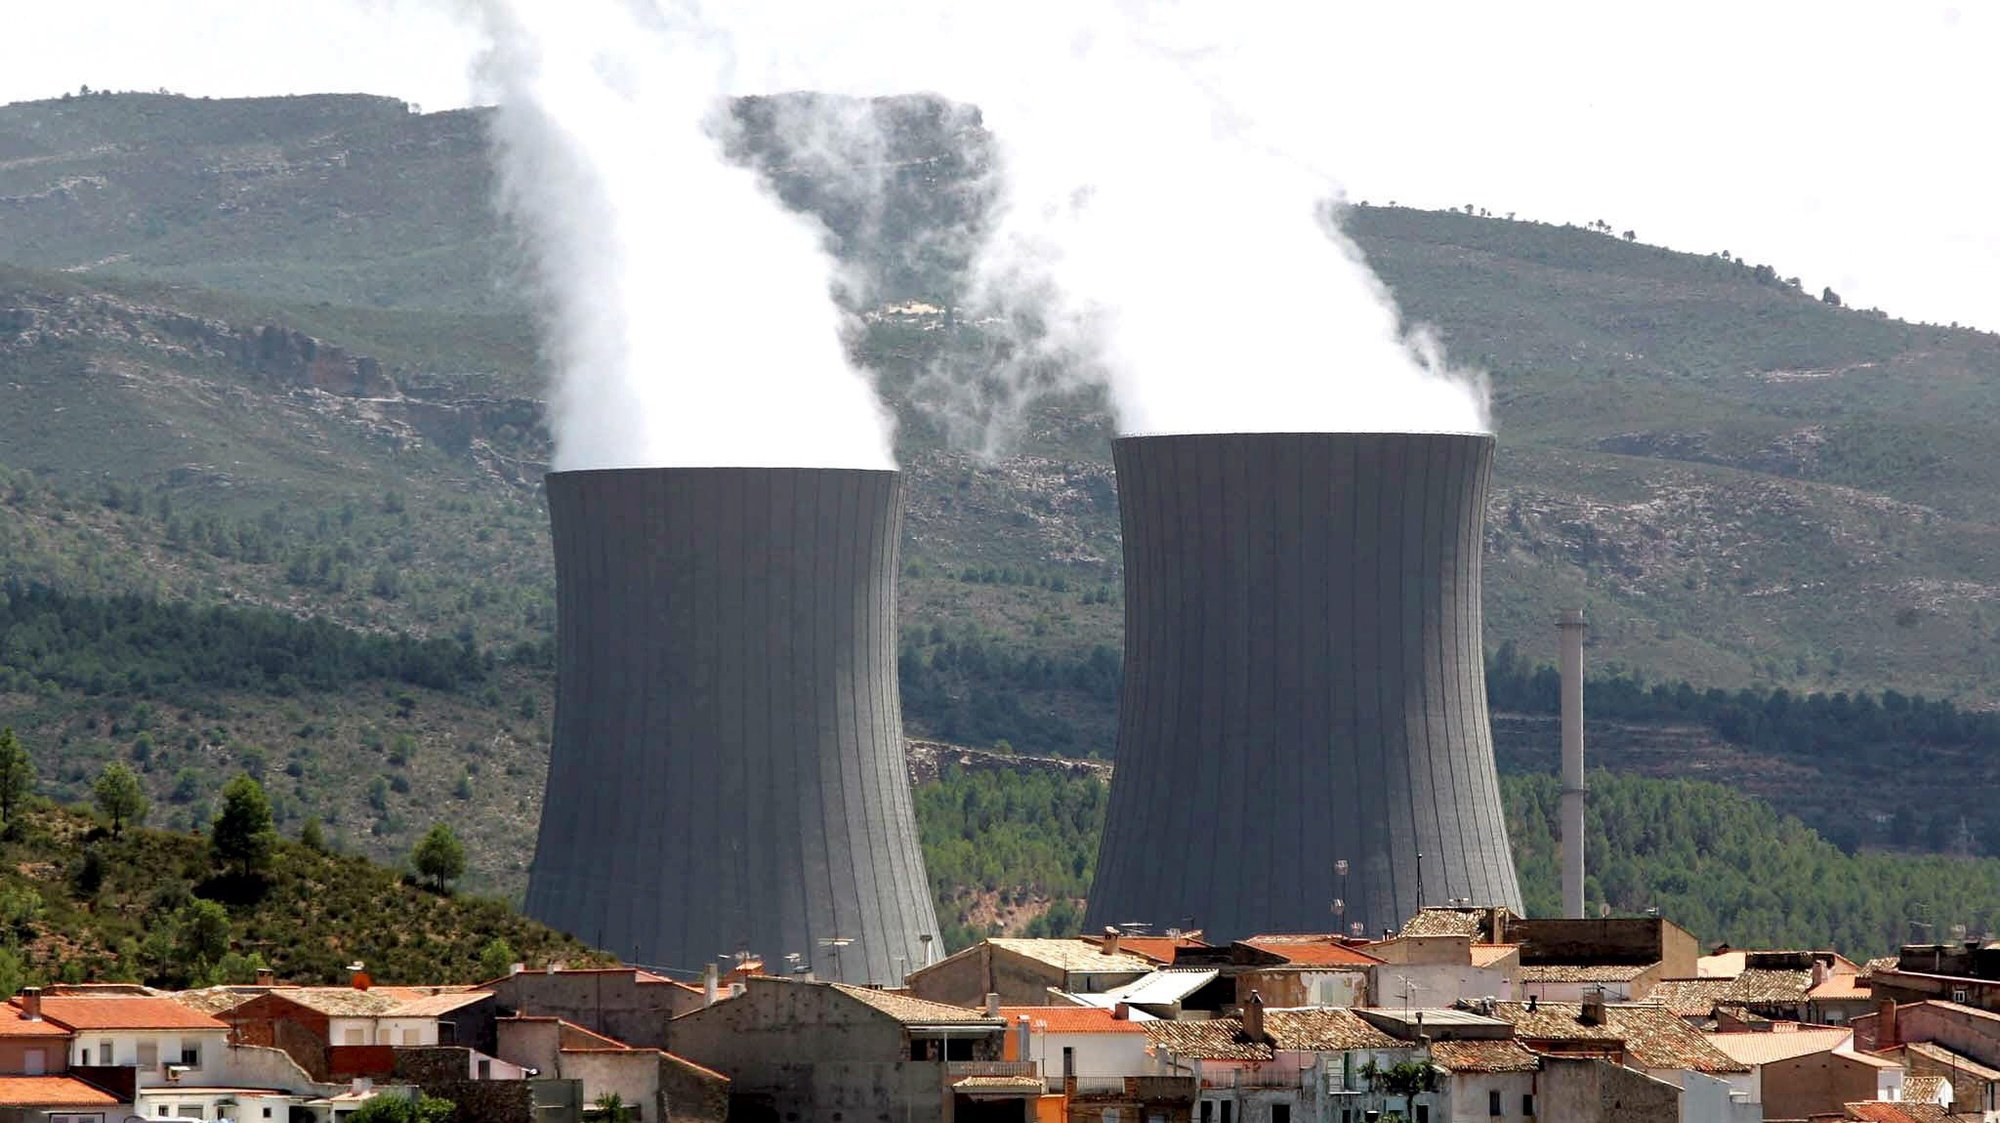 epa02636249 (FILES) File photo dated 08 August 2005 of a view of the cooling towers of the Cofrentes' nuclear plant close to Cofrentes village, Valencia region, eastern Spain. Spanish Industry Minister, Miguel Sebastian announced on 16 March 2011 at Lower House of Spanish Parliament that his ministry will  the 10-years extension of operating of the Cofrentes nuclear plant, which was approved by Government on 10 March 2011, one day before the Japan's earthquake. Sebastian added the conditions of extension's agreement will be looked over to study if there is neccesary to implement complementary safety measures.  EPA/KAI FOERSTERLING